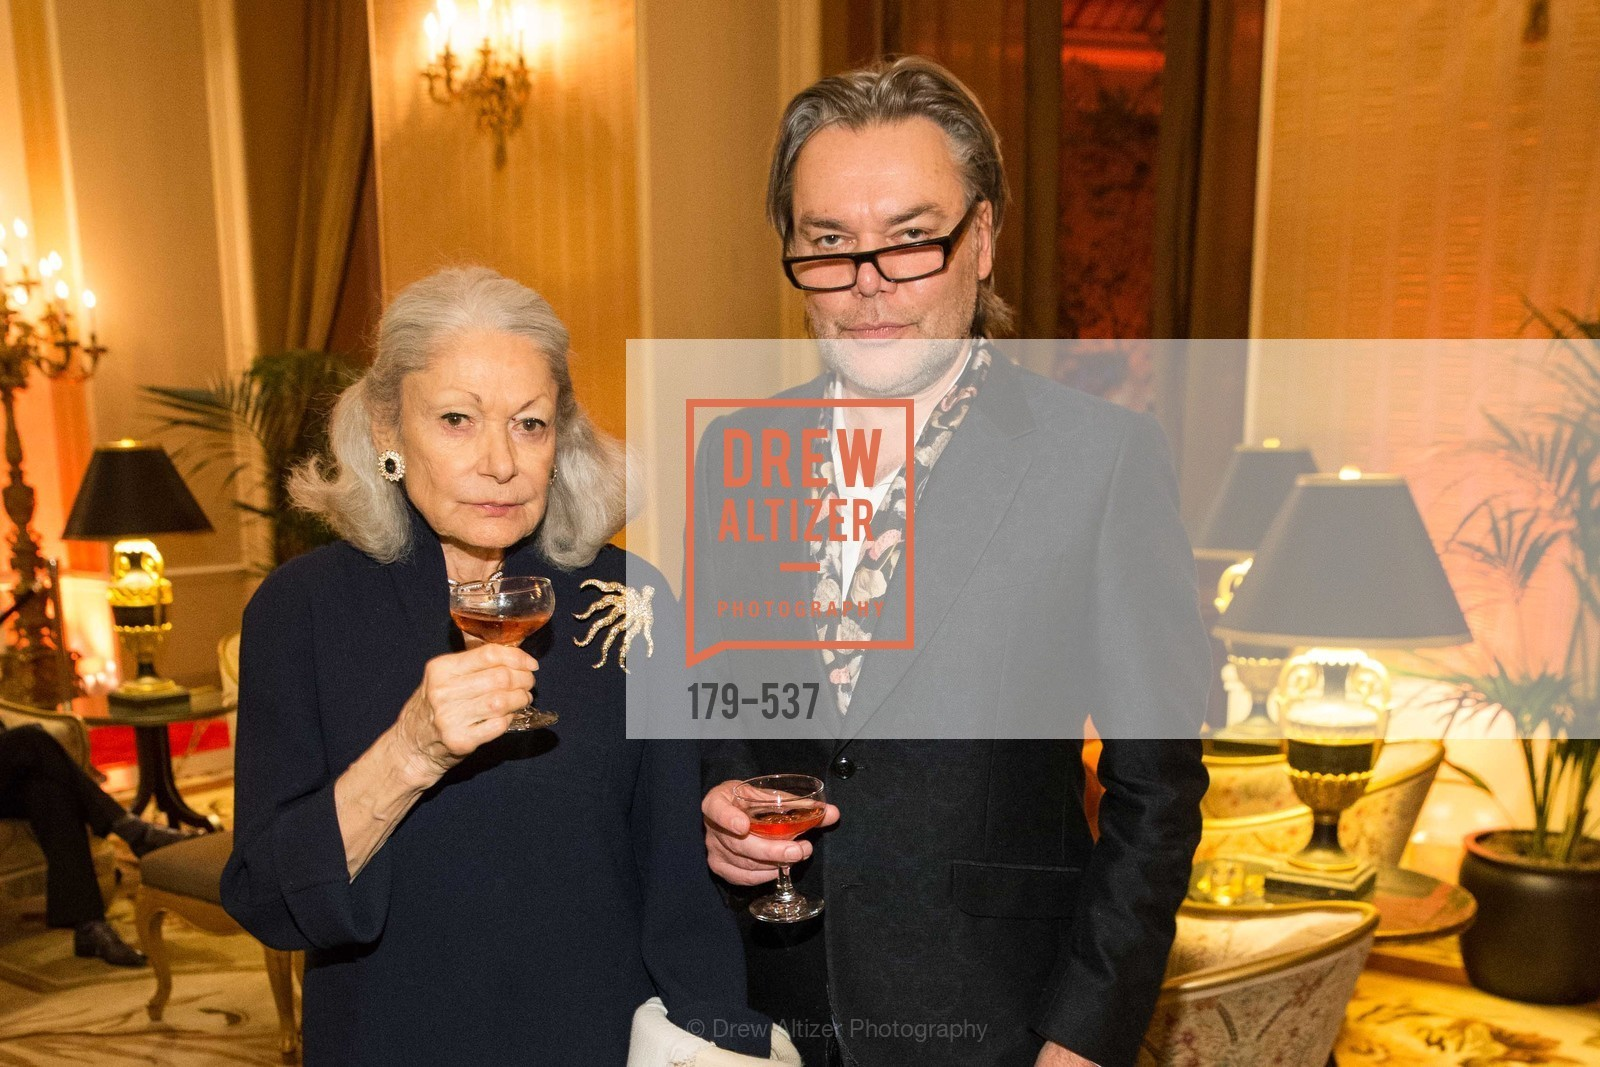 Denise Hale, David Downton, TOP OF THE MARK'S 75TH Anniversary Party, US, November 7th, 2014,Drew Altizer, Drew Altizer Photography, full-service event agency, private events, San Francisco photographer, photographer California